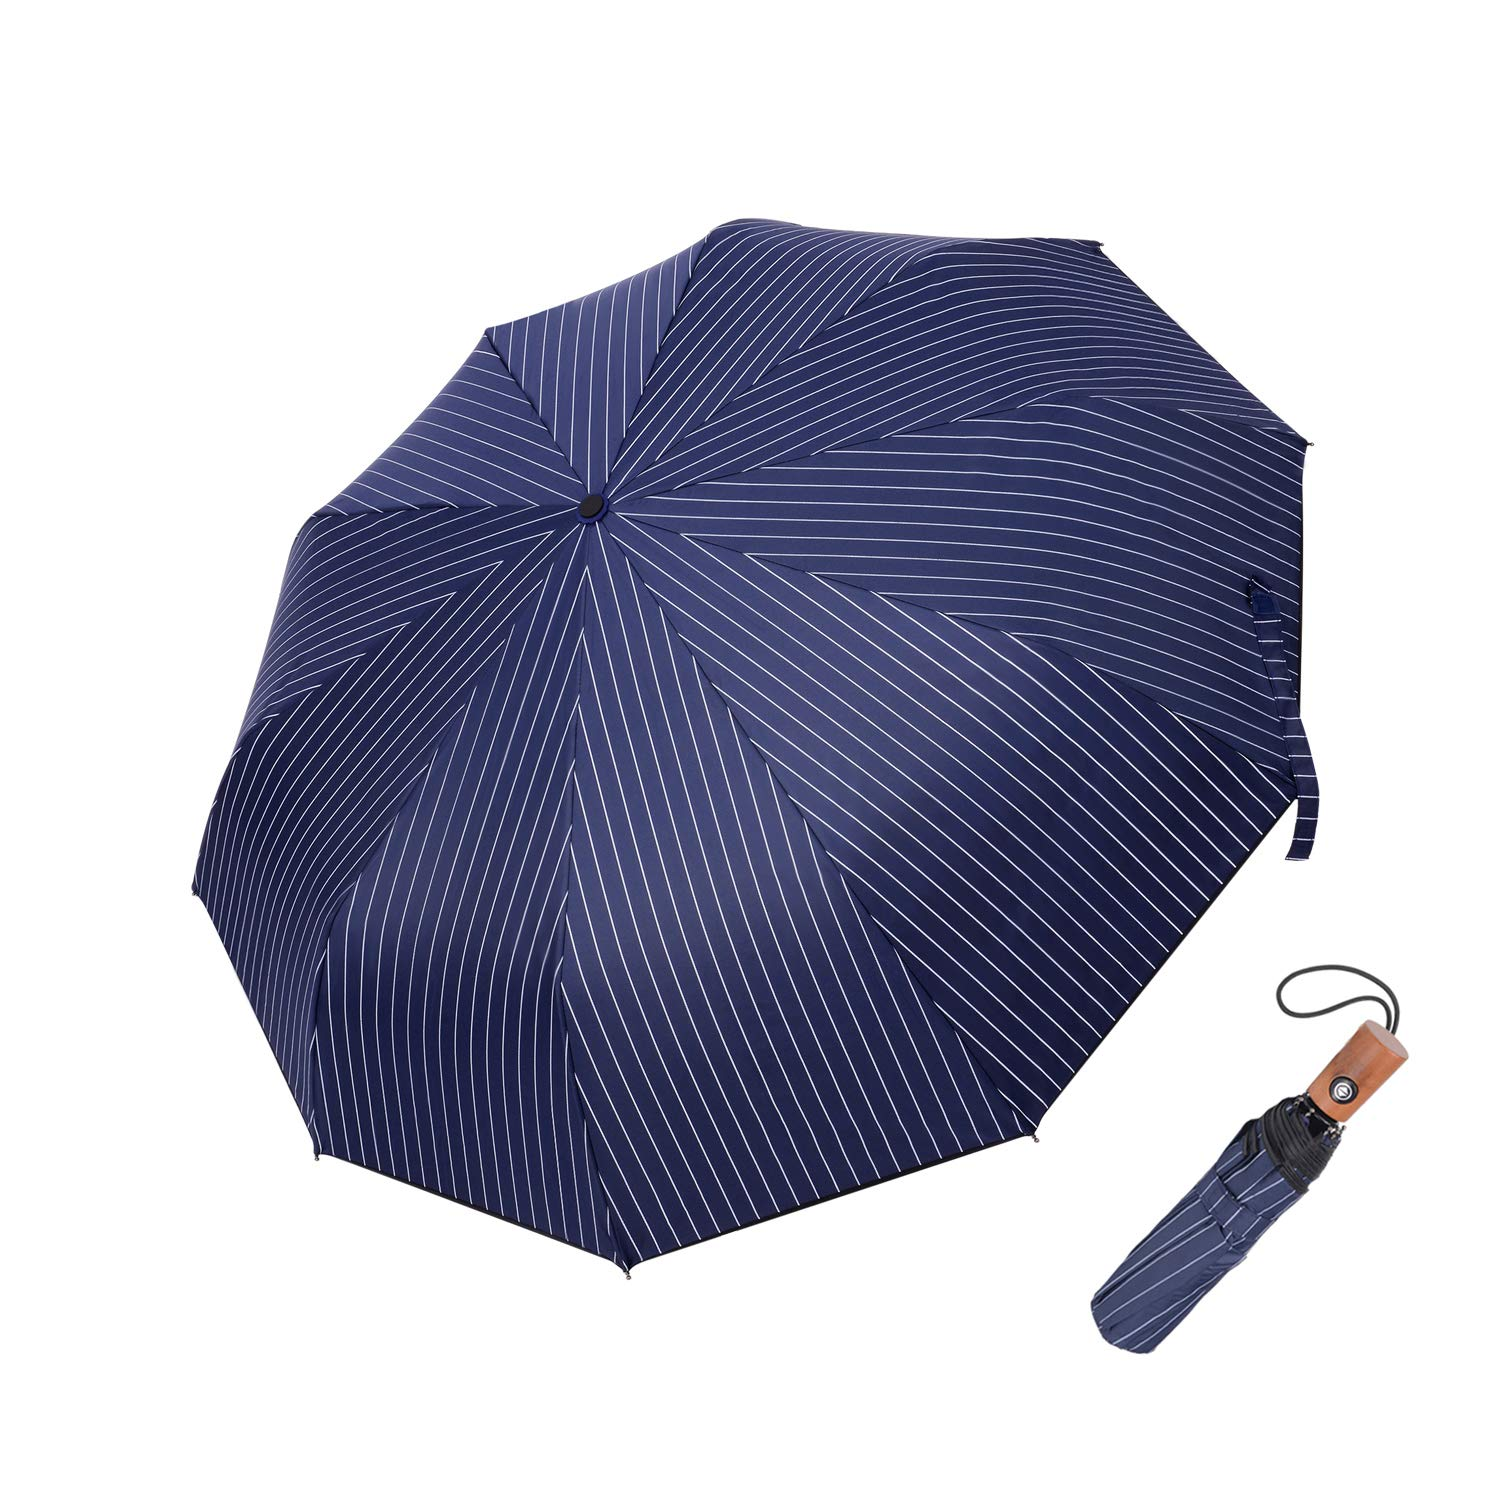 GBU Compact Travel Umbrella w/Windproof UV Protection,Wood Handle– Automated Open/Close System (Black)